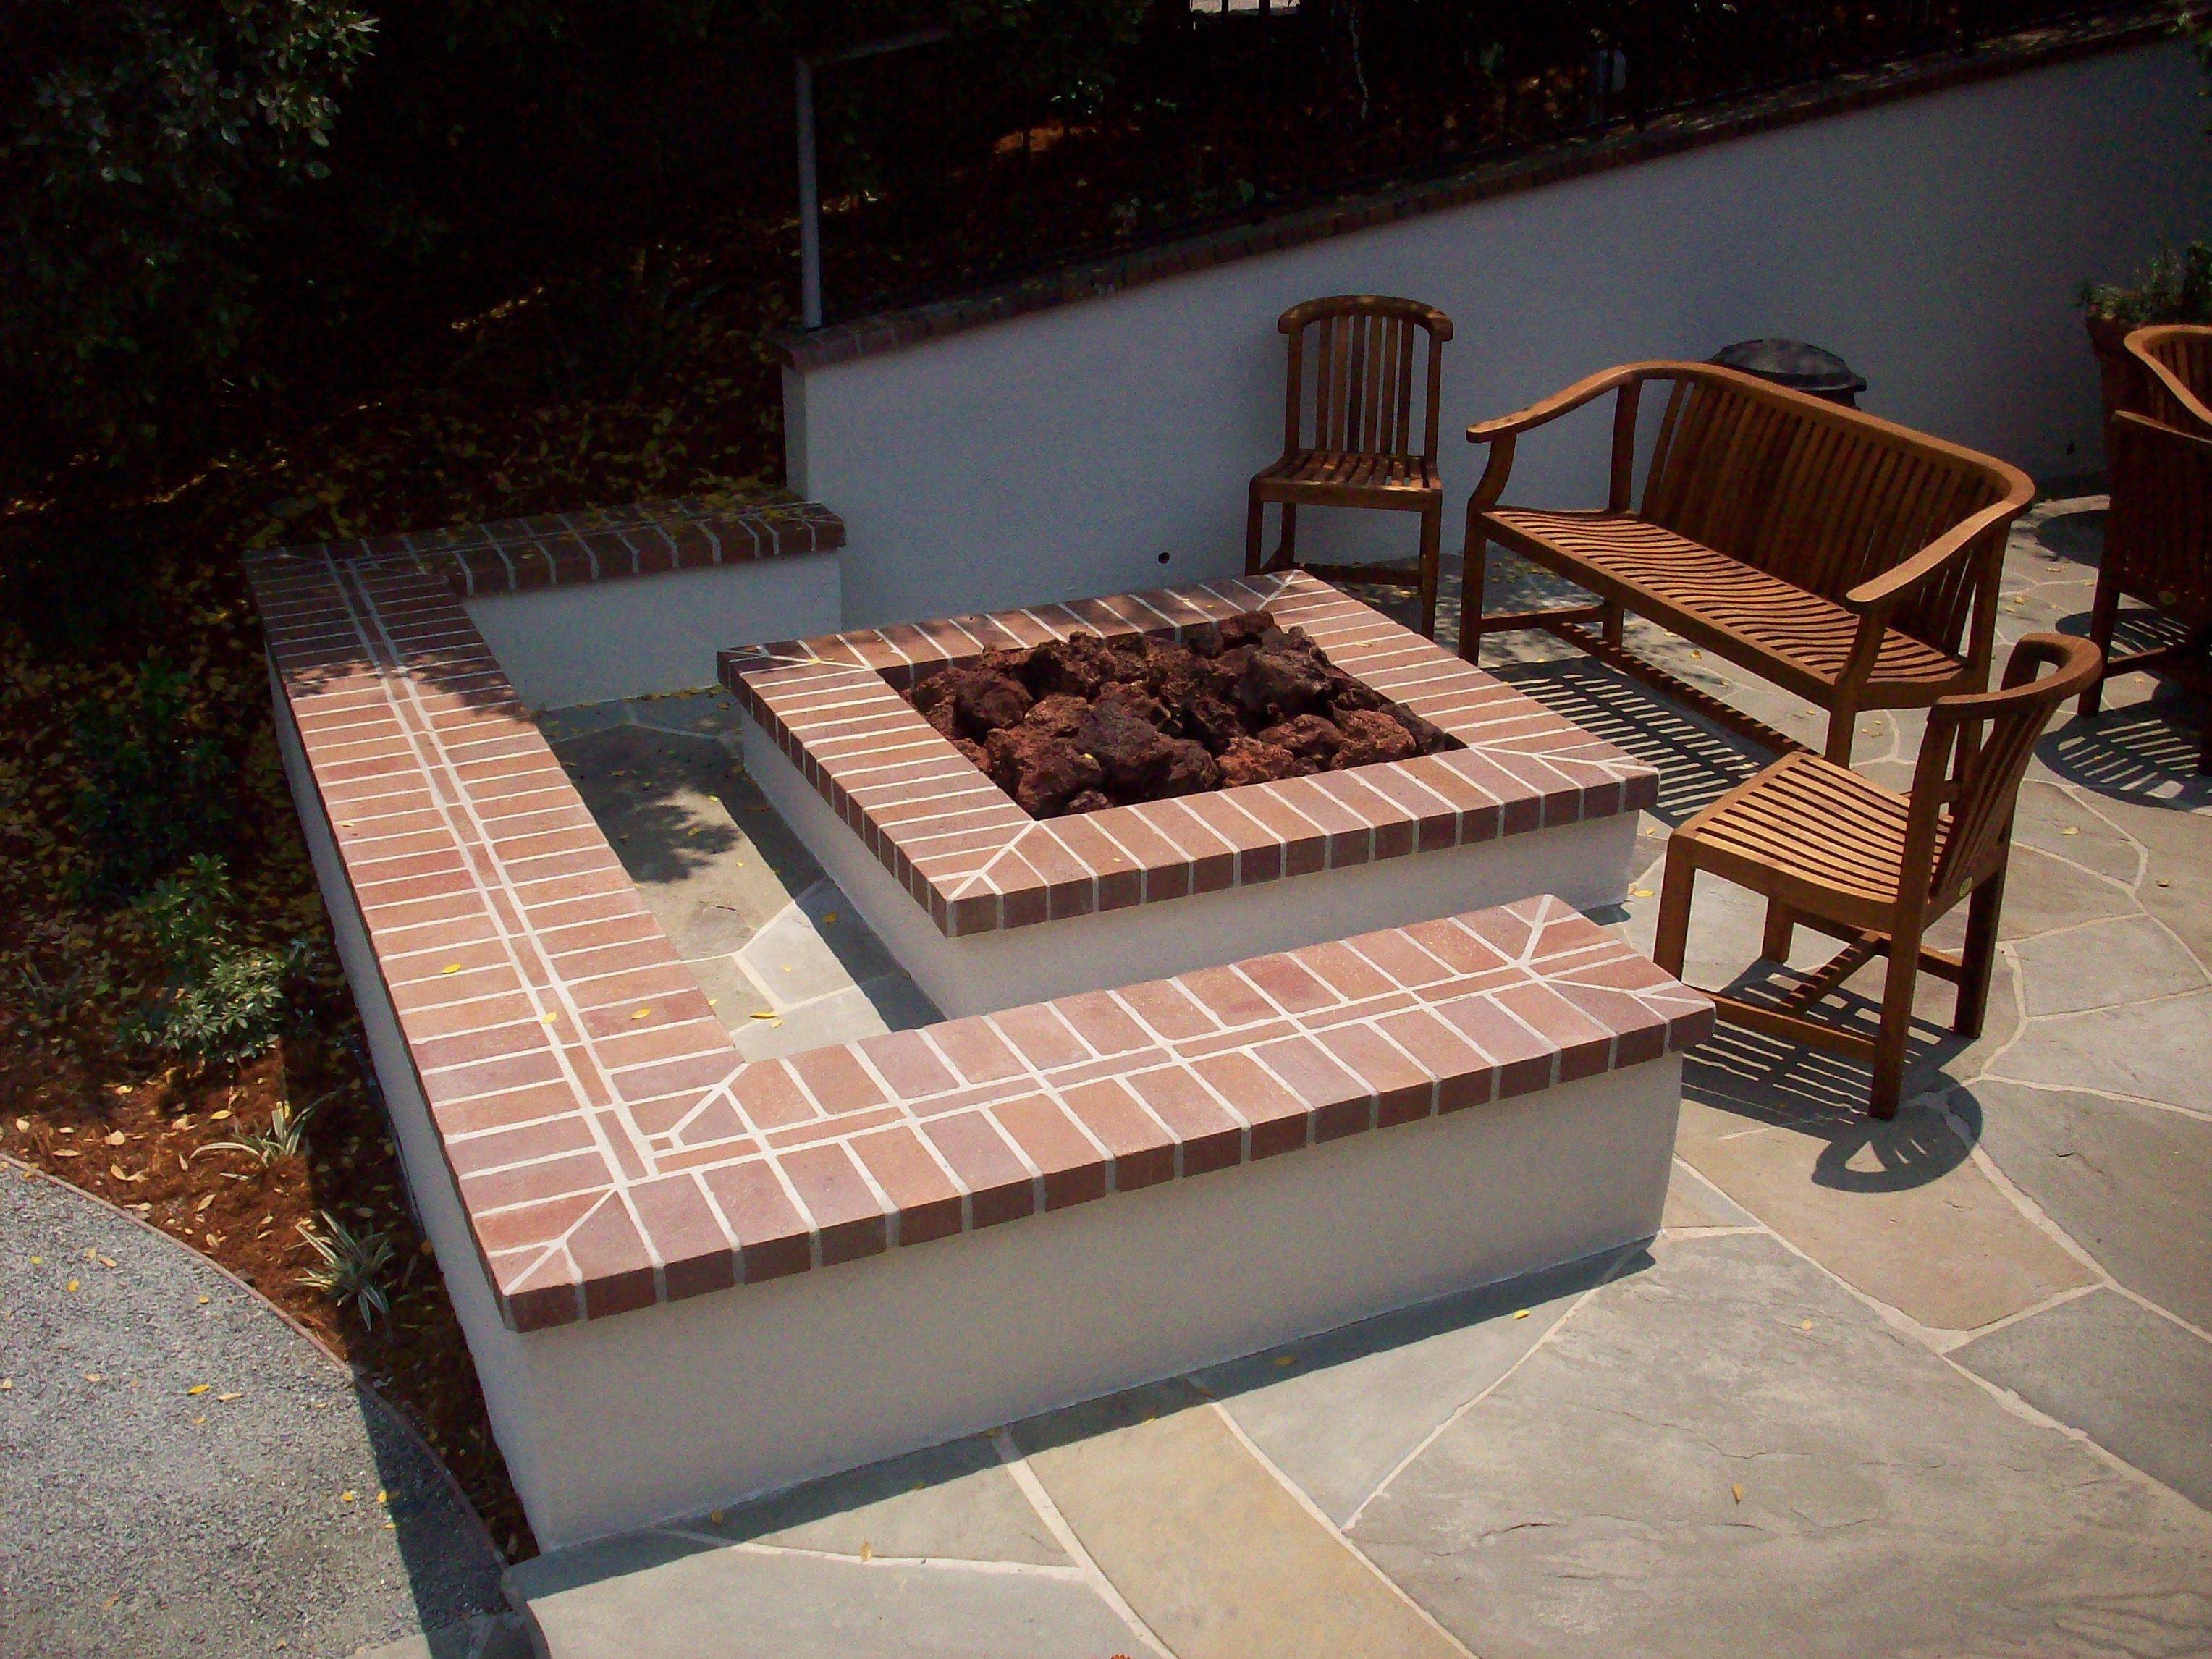 Facts About Brick Fire Pit Ideas: Backyard Brick Fire Pit Ideas